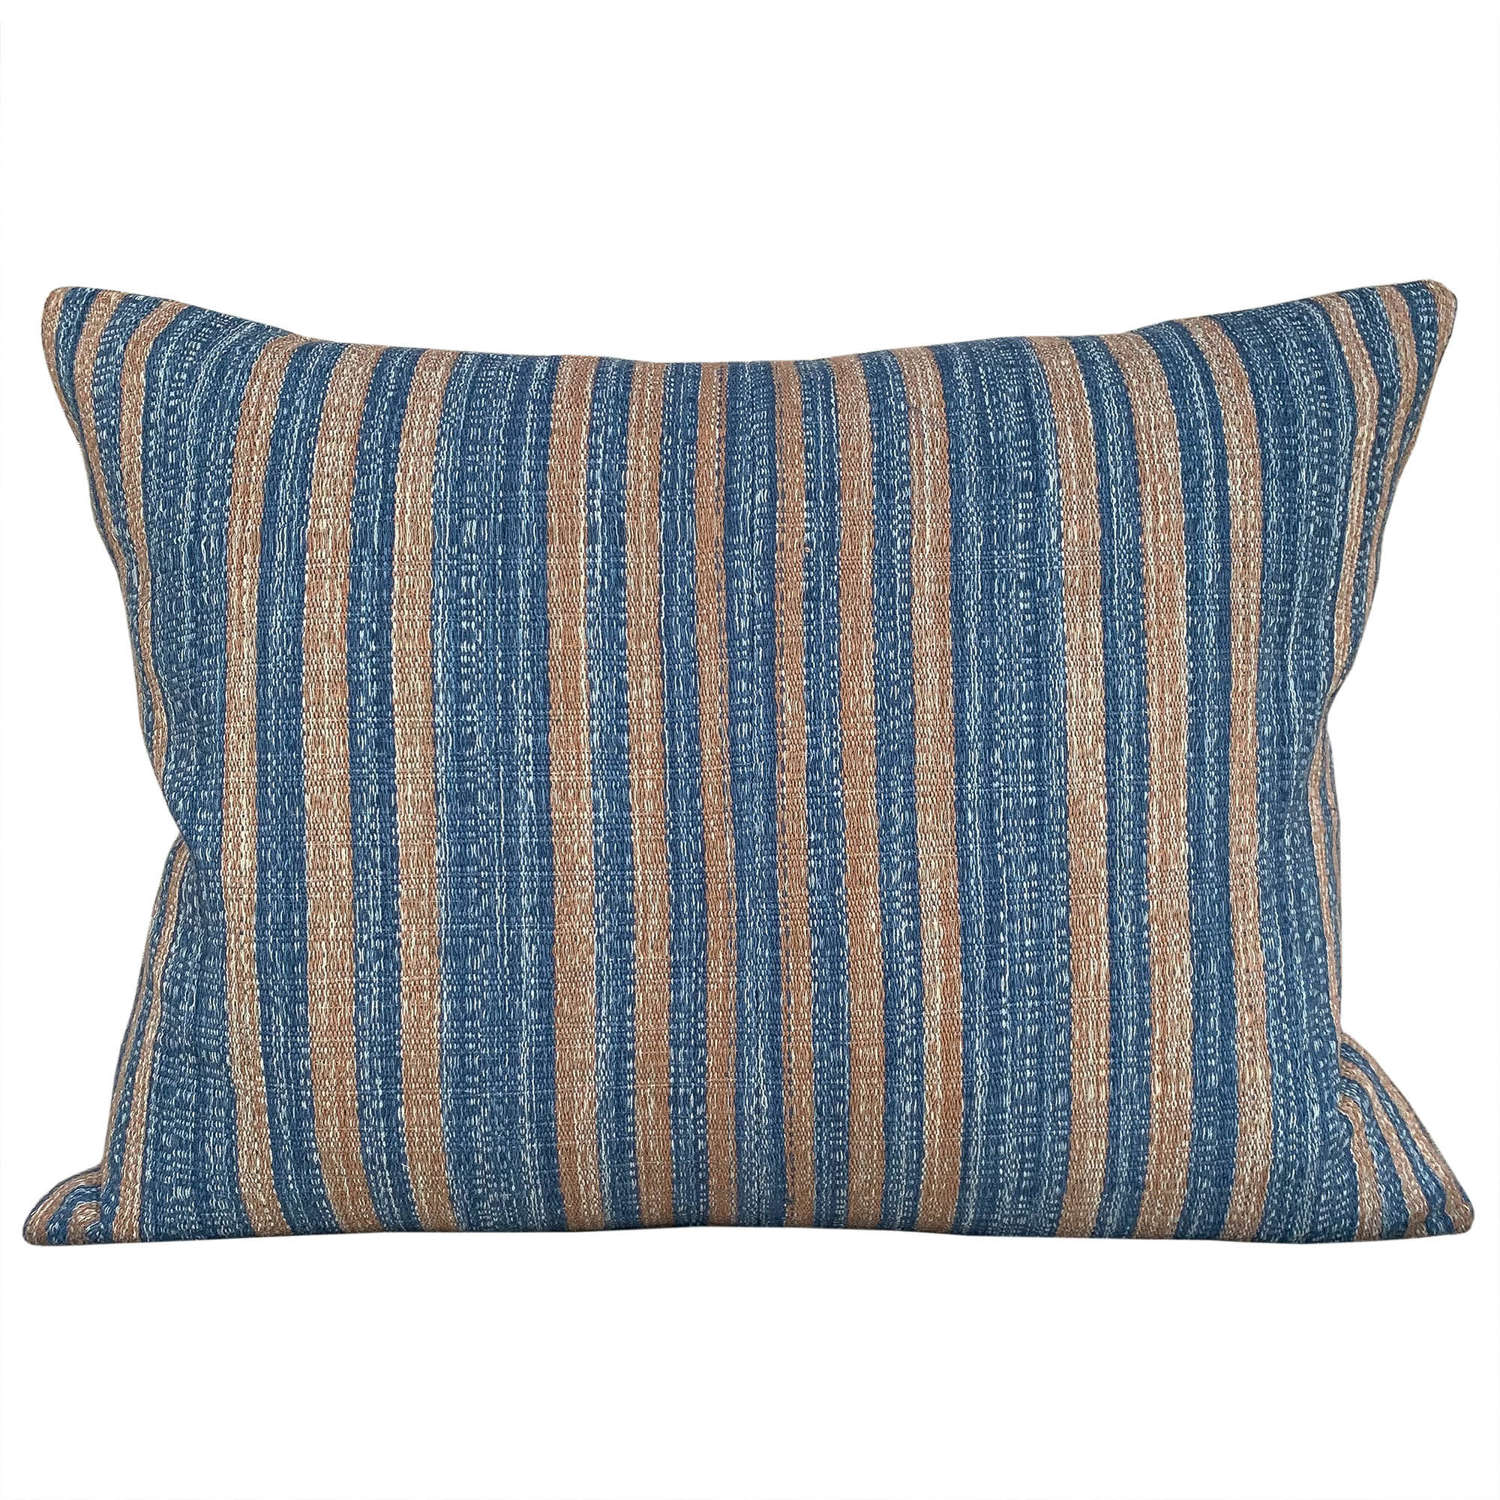 Blue and ochre striped cushions